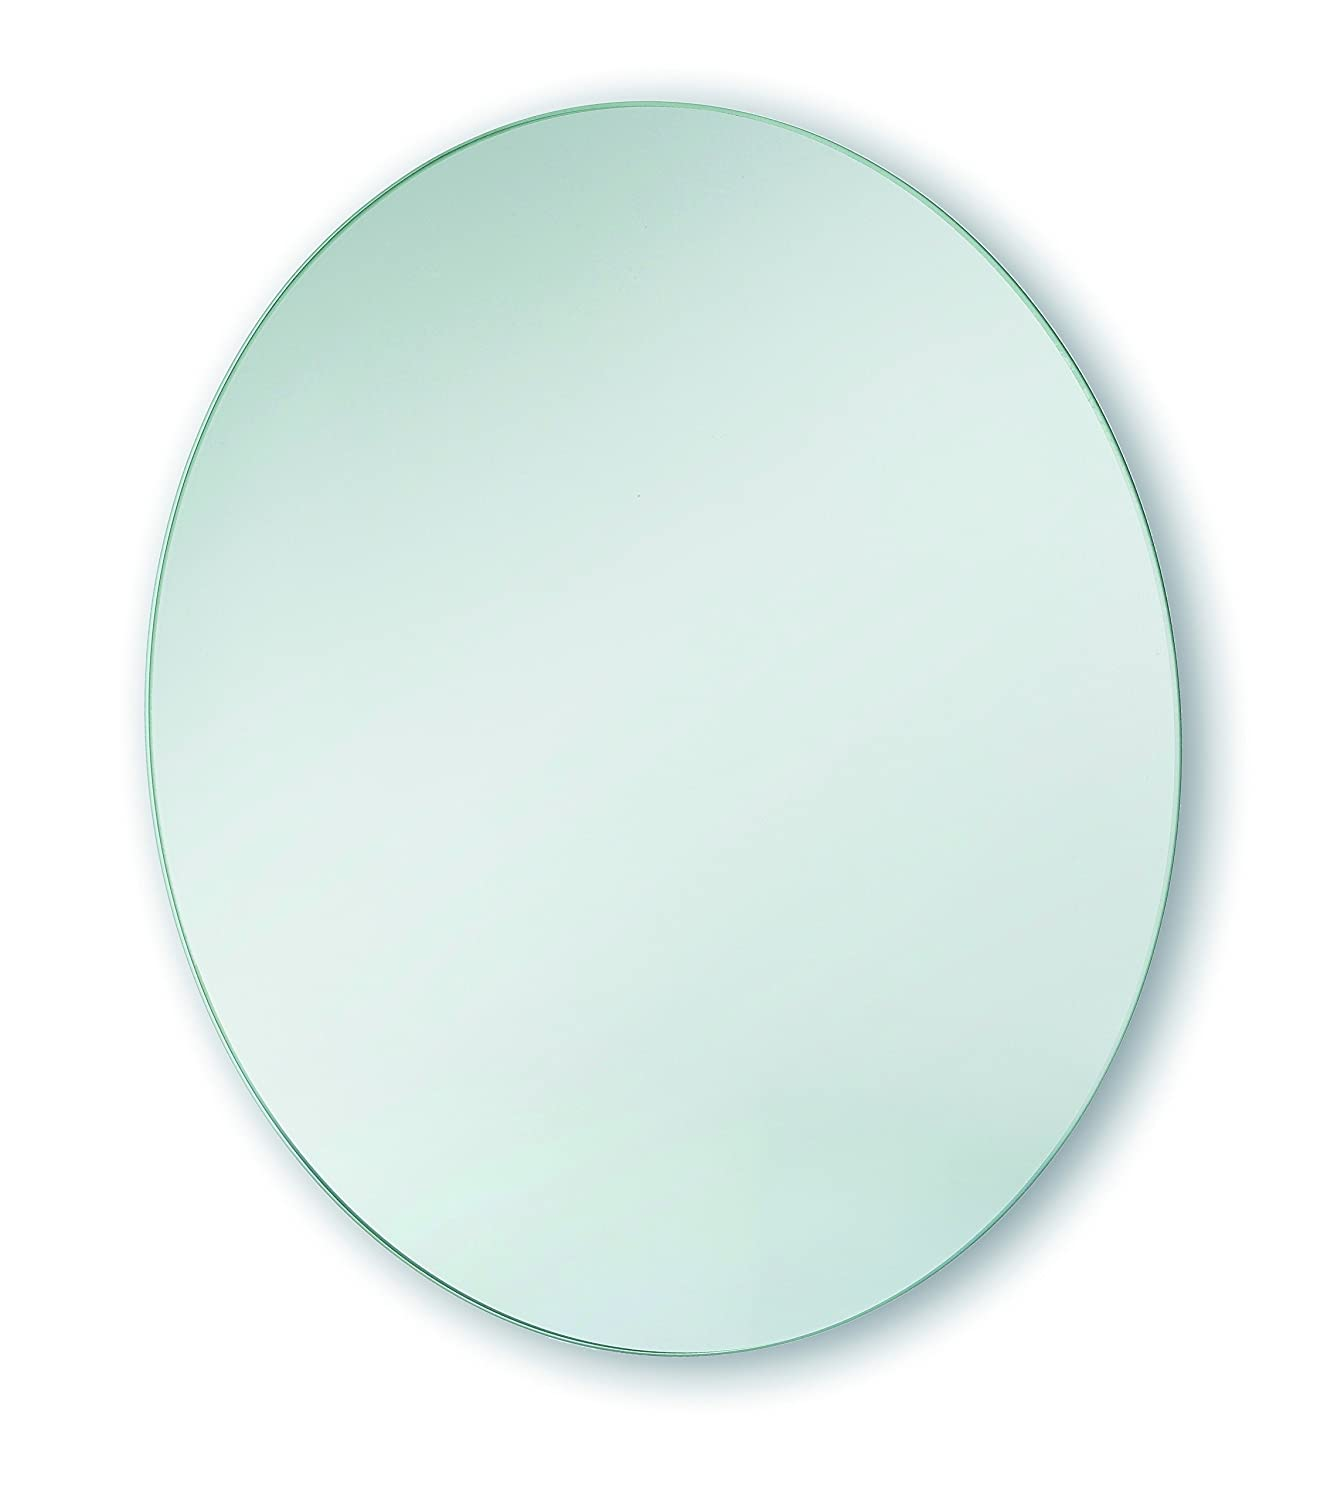 Bathroom Mantel Hall Round Square Cosmetic Shaving Mounted Mirror Frosted (Round Plain 40cm)